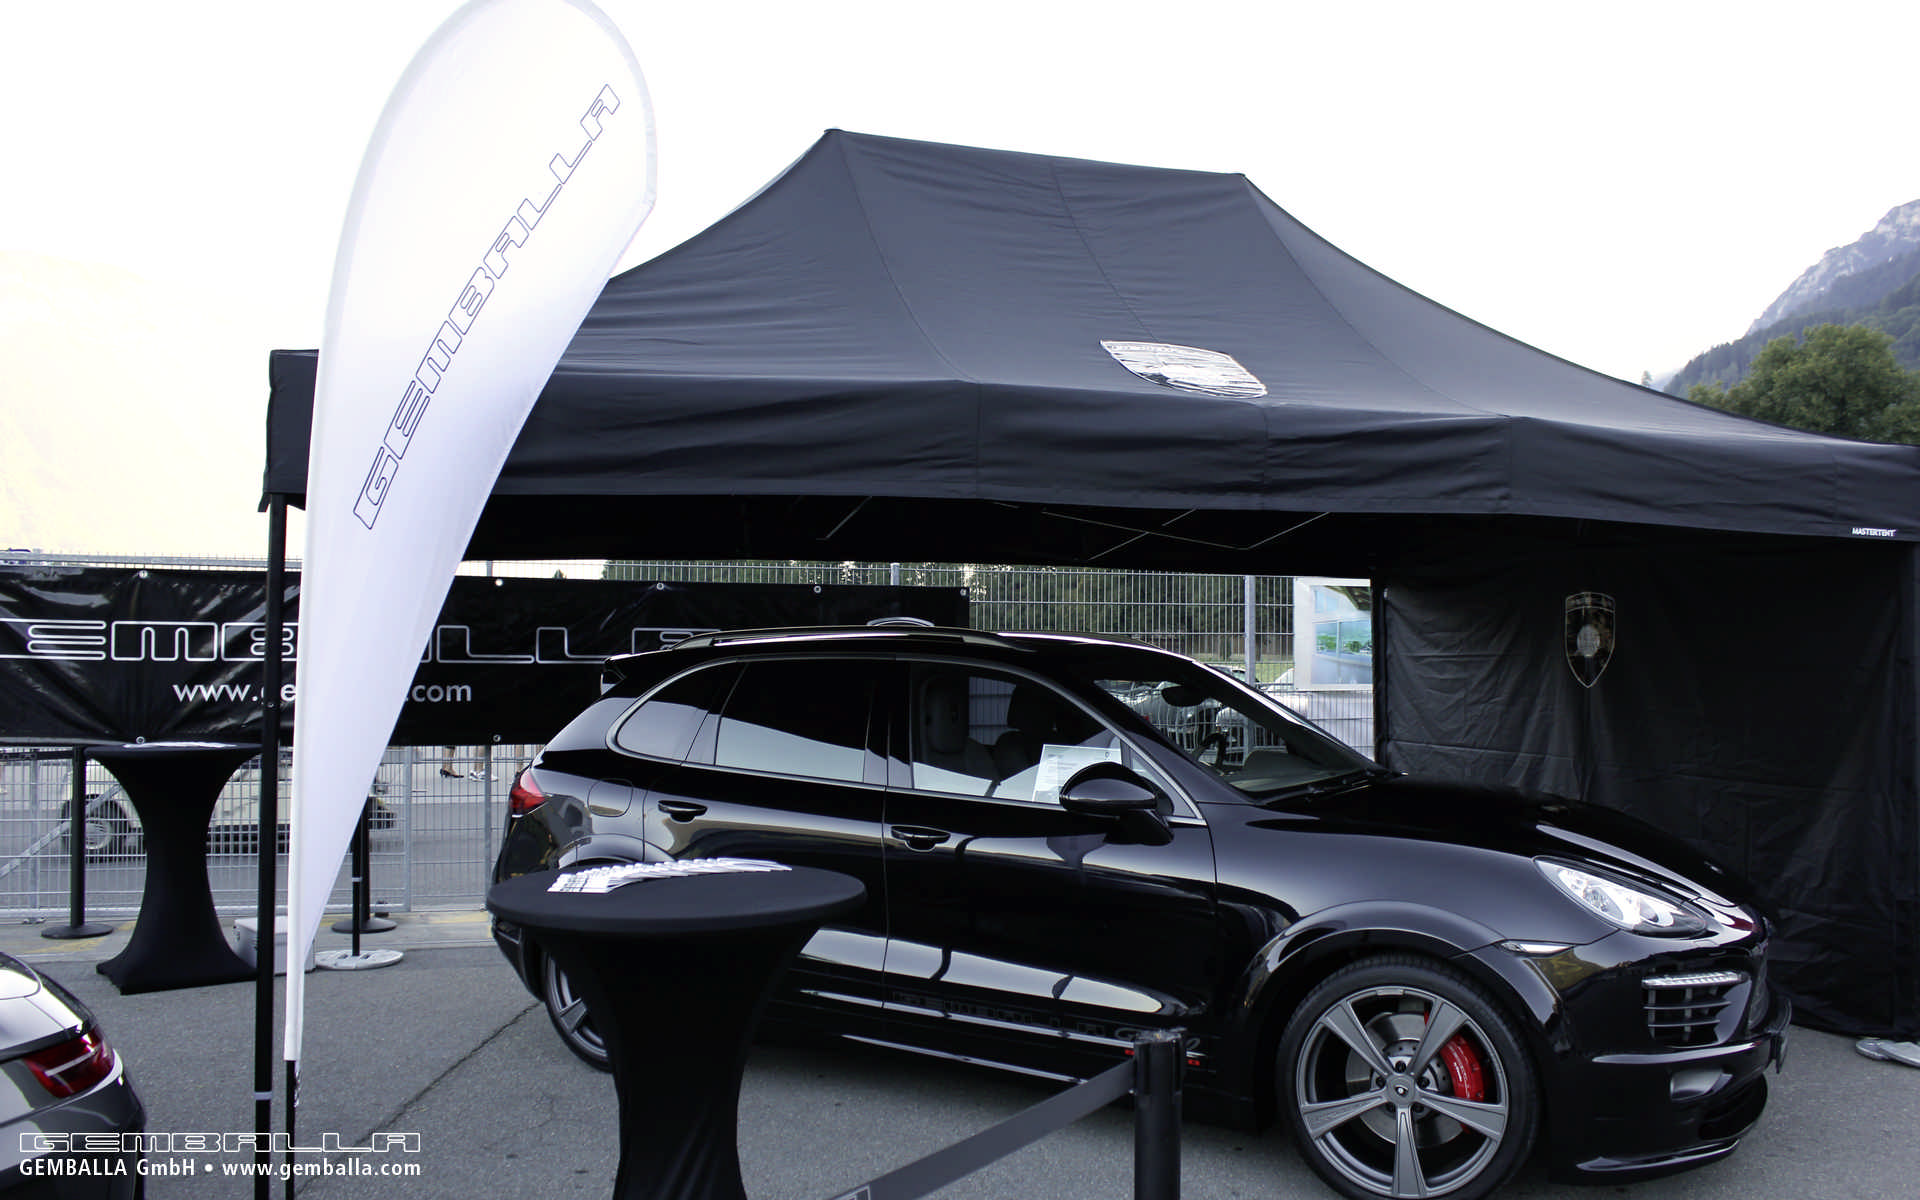 gemballa_gmbh_event_pt_interlaken_2012_001